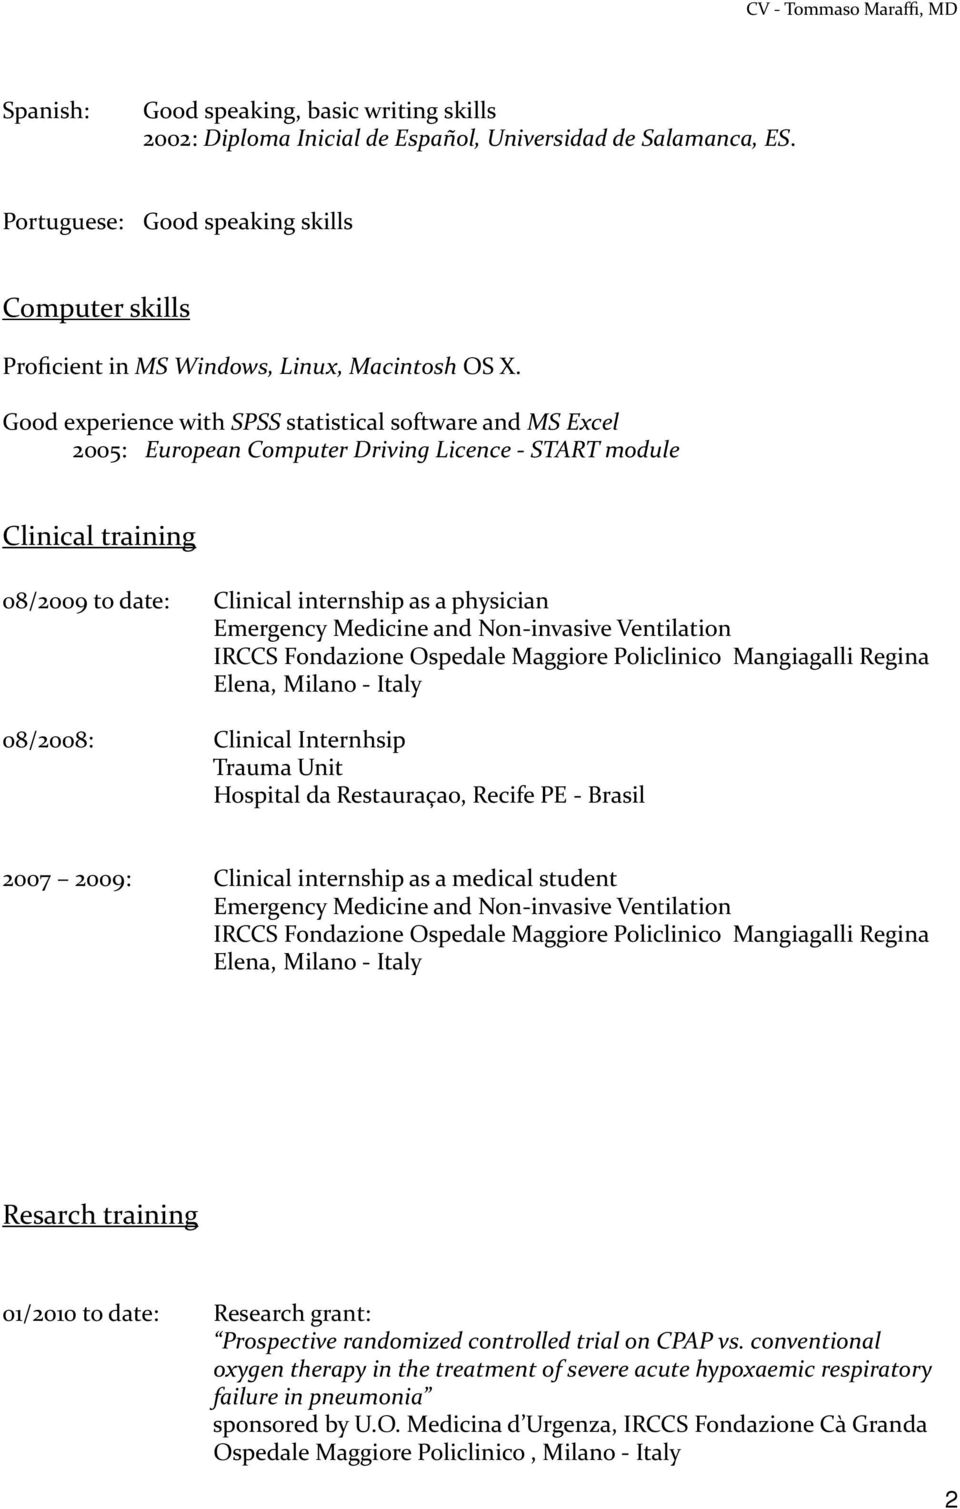 Good experience with SPSS statistical software and MS Excel 2005: European Computer Driving Licence - START module Clinical training 08/2009 to date: Clinical internship as a physician Emergency